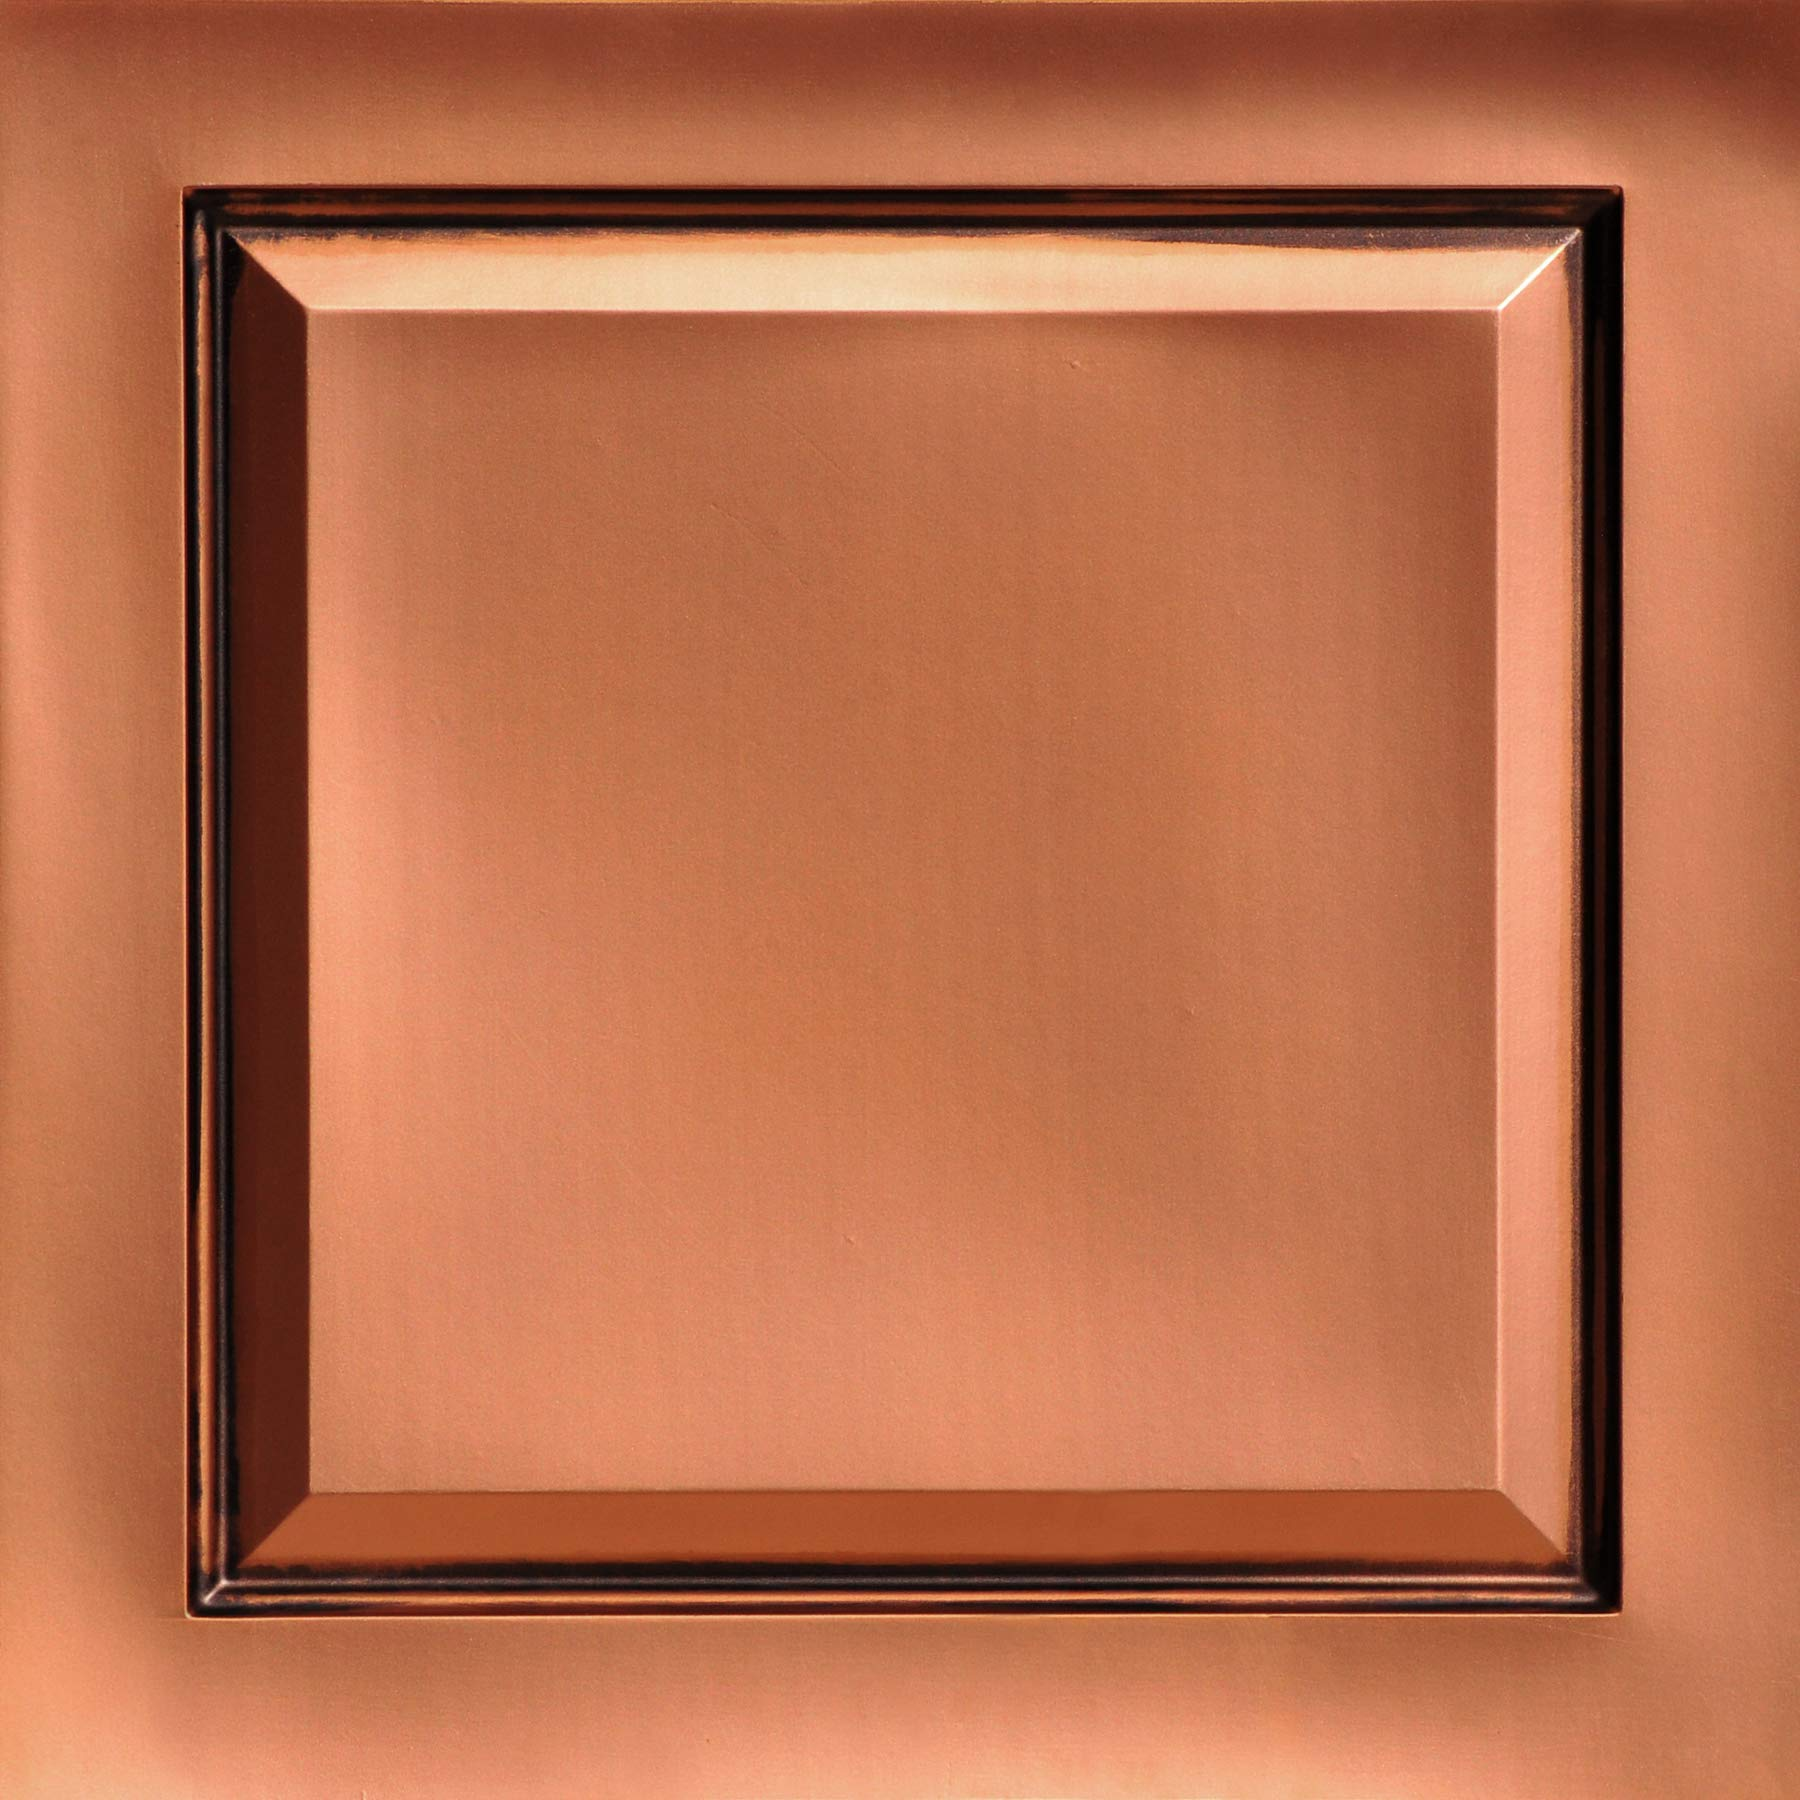 From Plain To Beautiful In Hours 505ac-24x24-25 Raised Panel Ceiling Tile Antique Copper 25